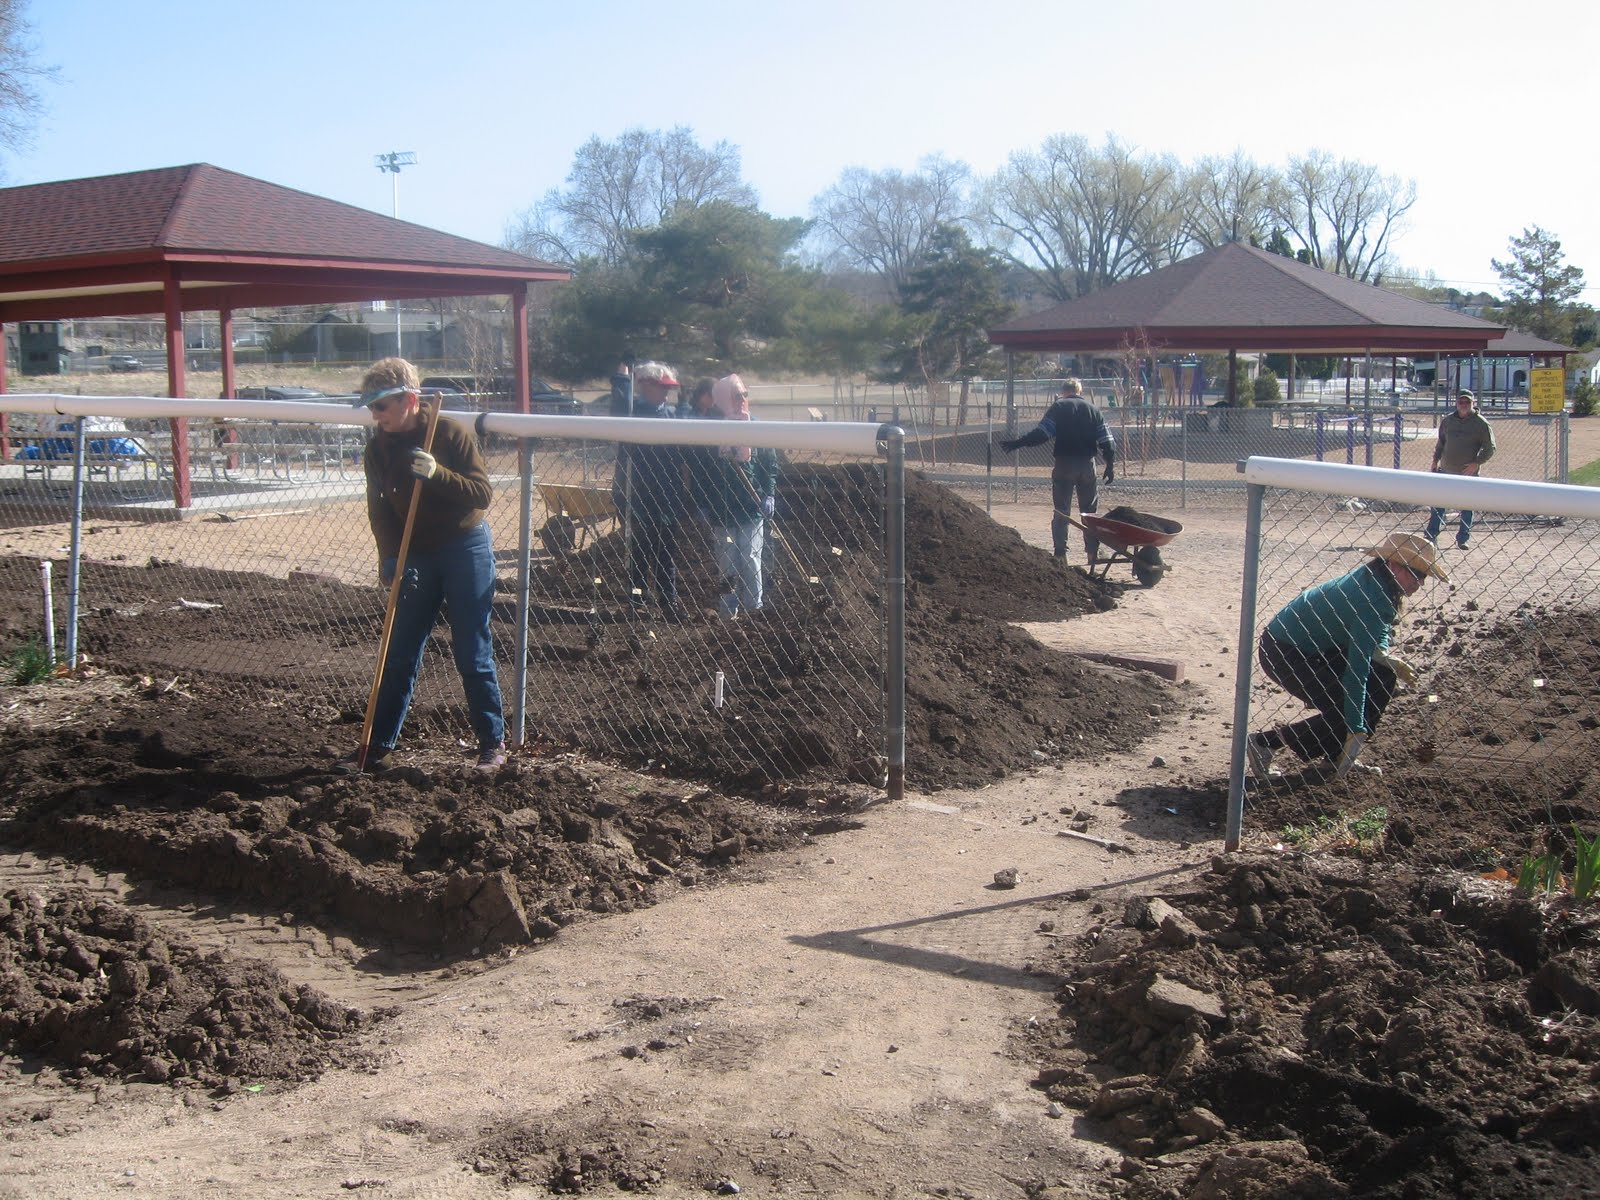 Prescott ymca child care blog something 39 s growing at the ymca for Garden ranch ymca pool